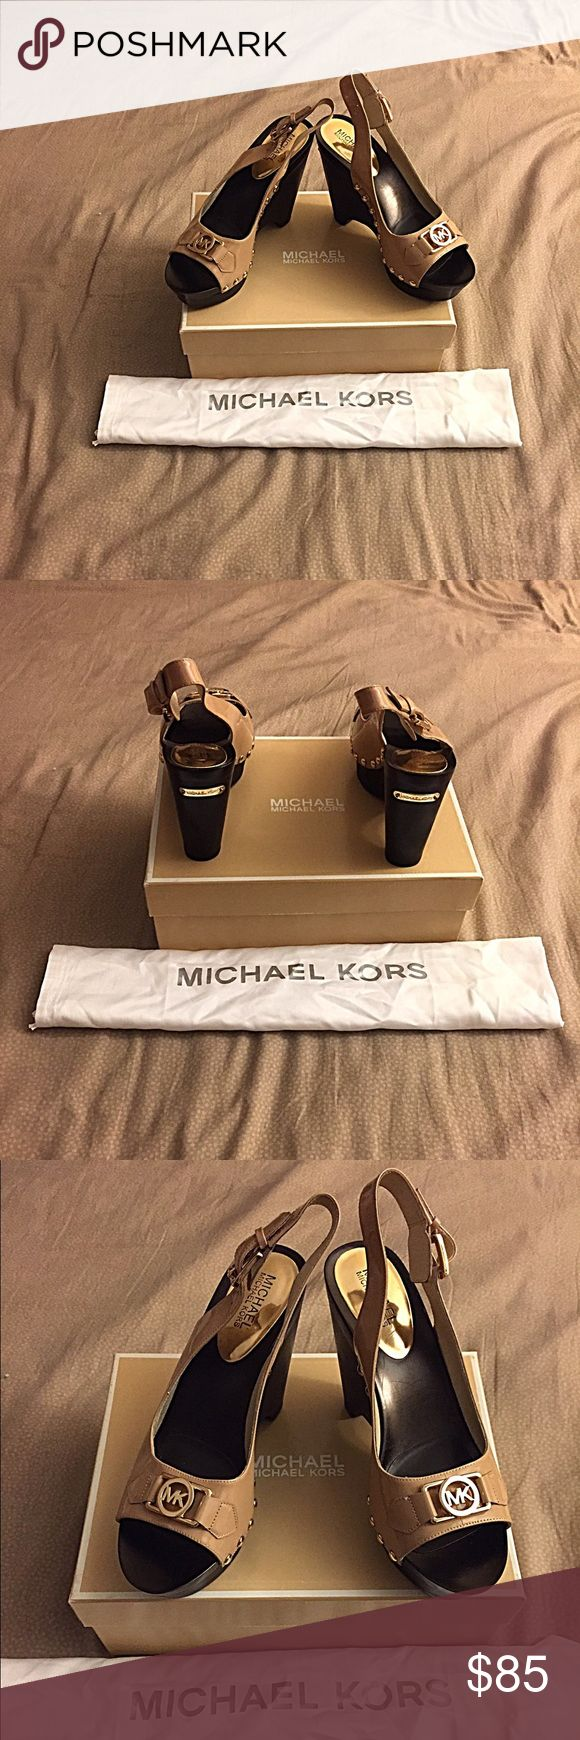 MICHAEL KOR HEELS these are in great in great condition! i do not except trades but i am open to negotiate. let me know if there is something else you would like to see. COMES WITH BOX!!! Michael Kors Shoes Heels